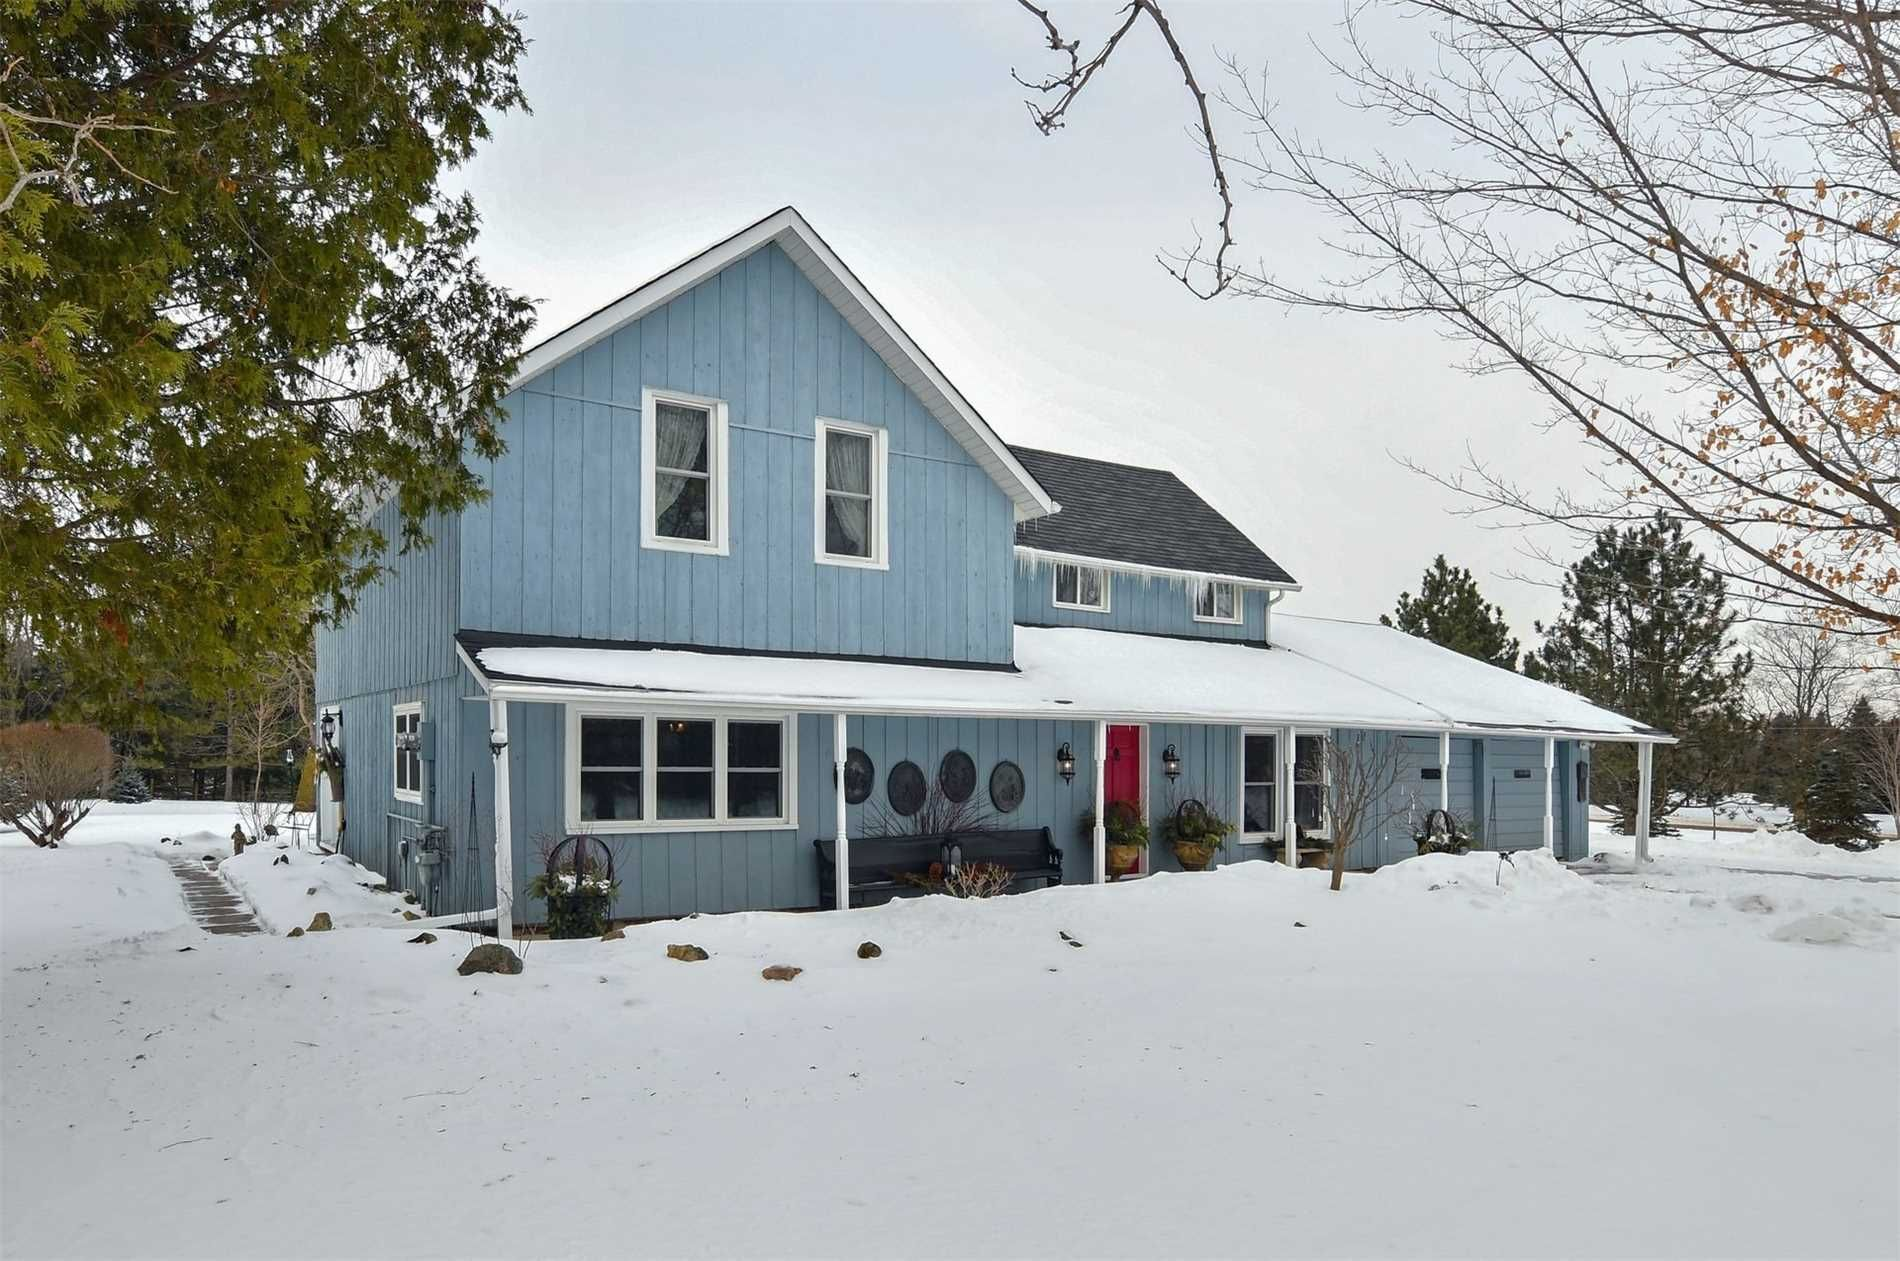 Main Photo: 248557 5 Sideroad in Mono: Rural Mono House (2-Storey) for sale : MLS®# X4362653